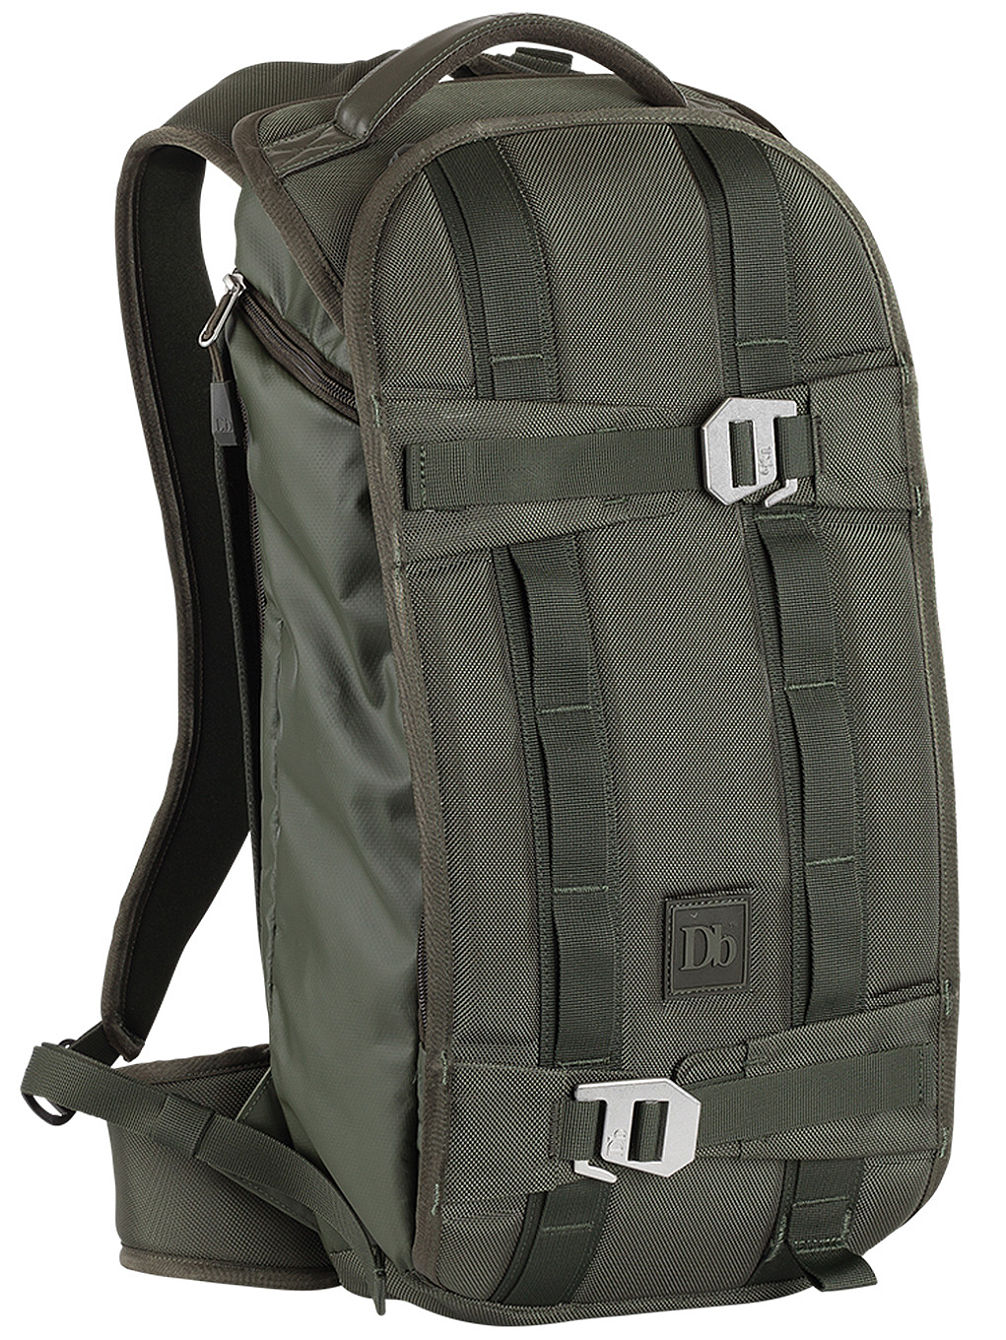 The Explorer Backpack